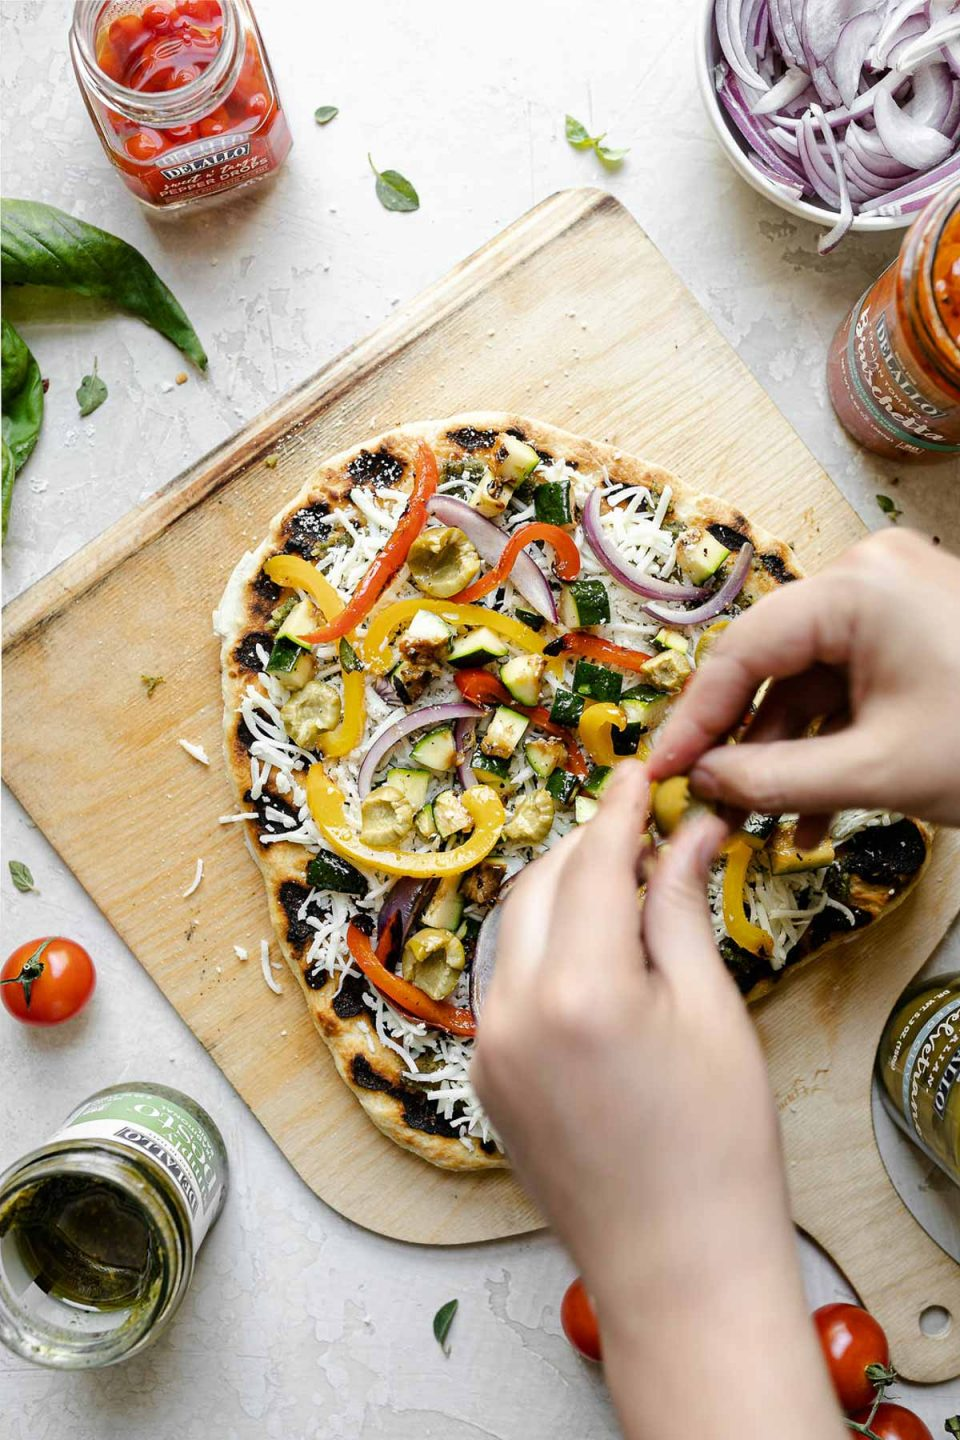 A woman's hand shown topping pizza with cheese, castelvetrano olives & grilled vegetables. The crust sits atop a wooden pizza peel, surrounded by fresh basil, cherry tomatoes, cheese, peppers, & sliced red onion.